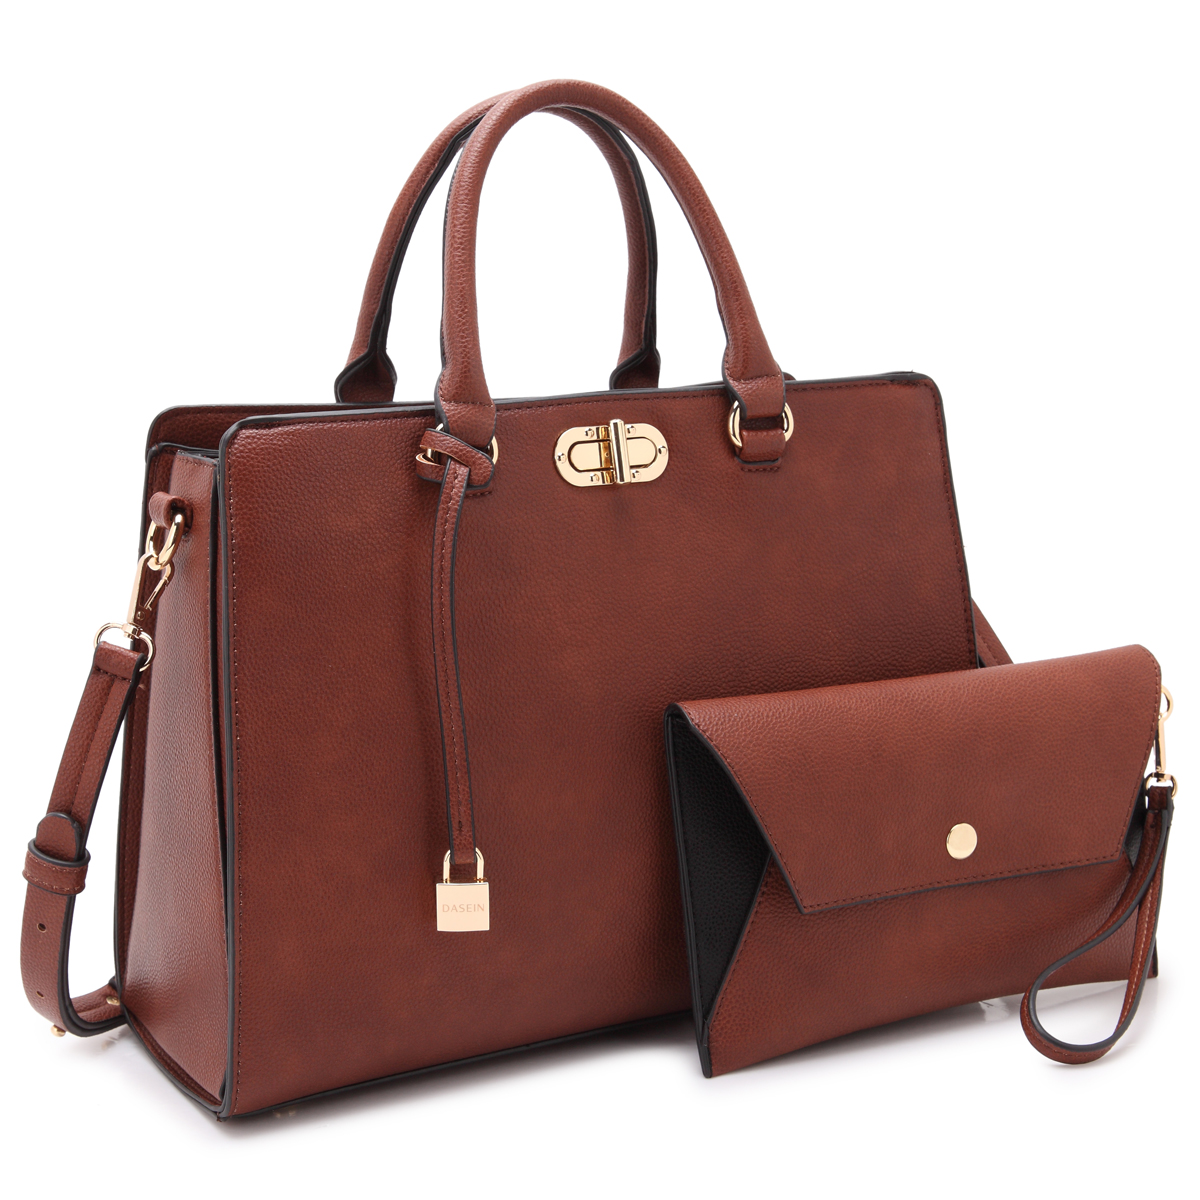 Dasein Faux Leather Satchel with Twist Lock  Front Compartment, Dangling Padlock deco, and with Matching Wristlet